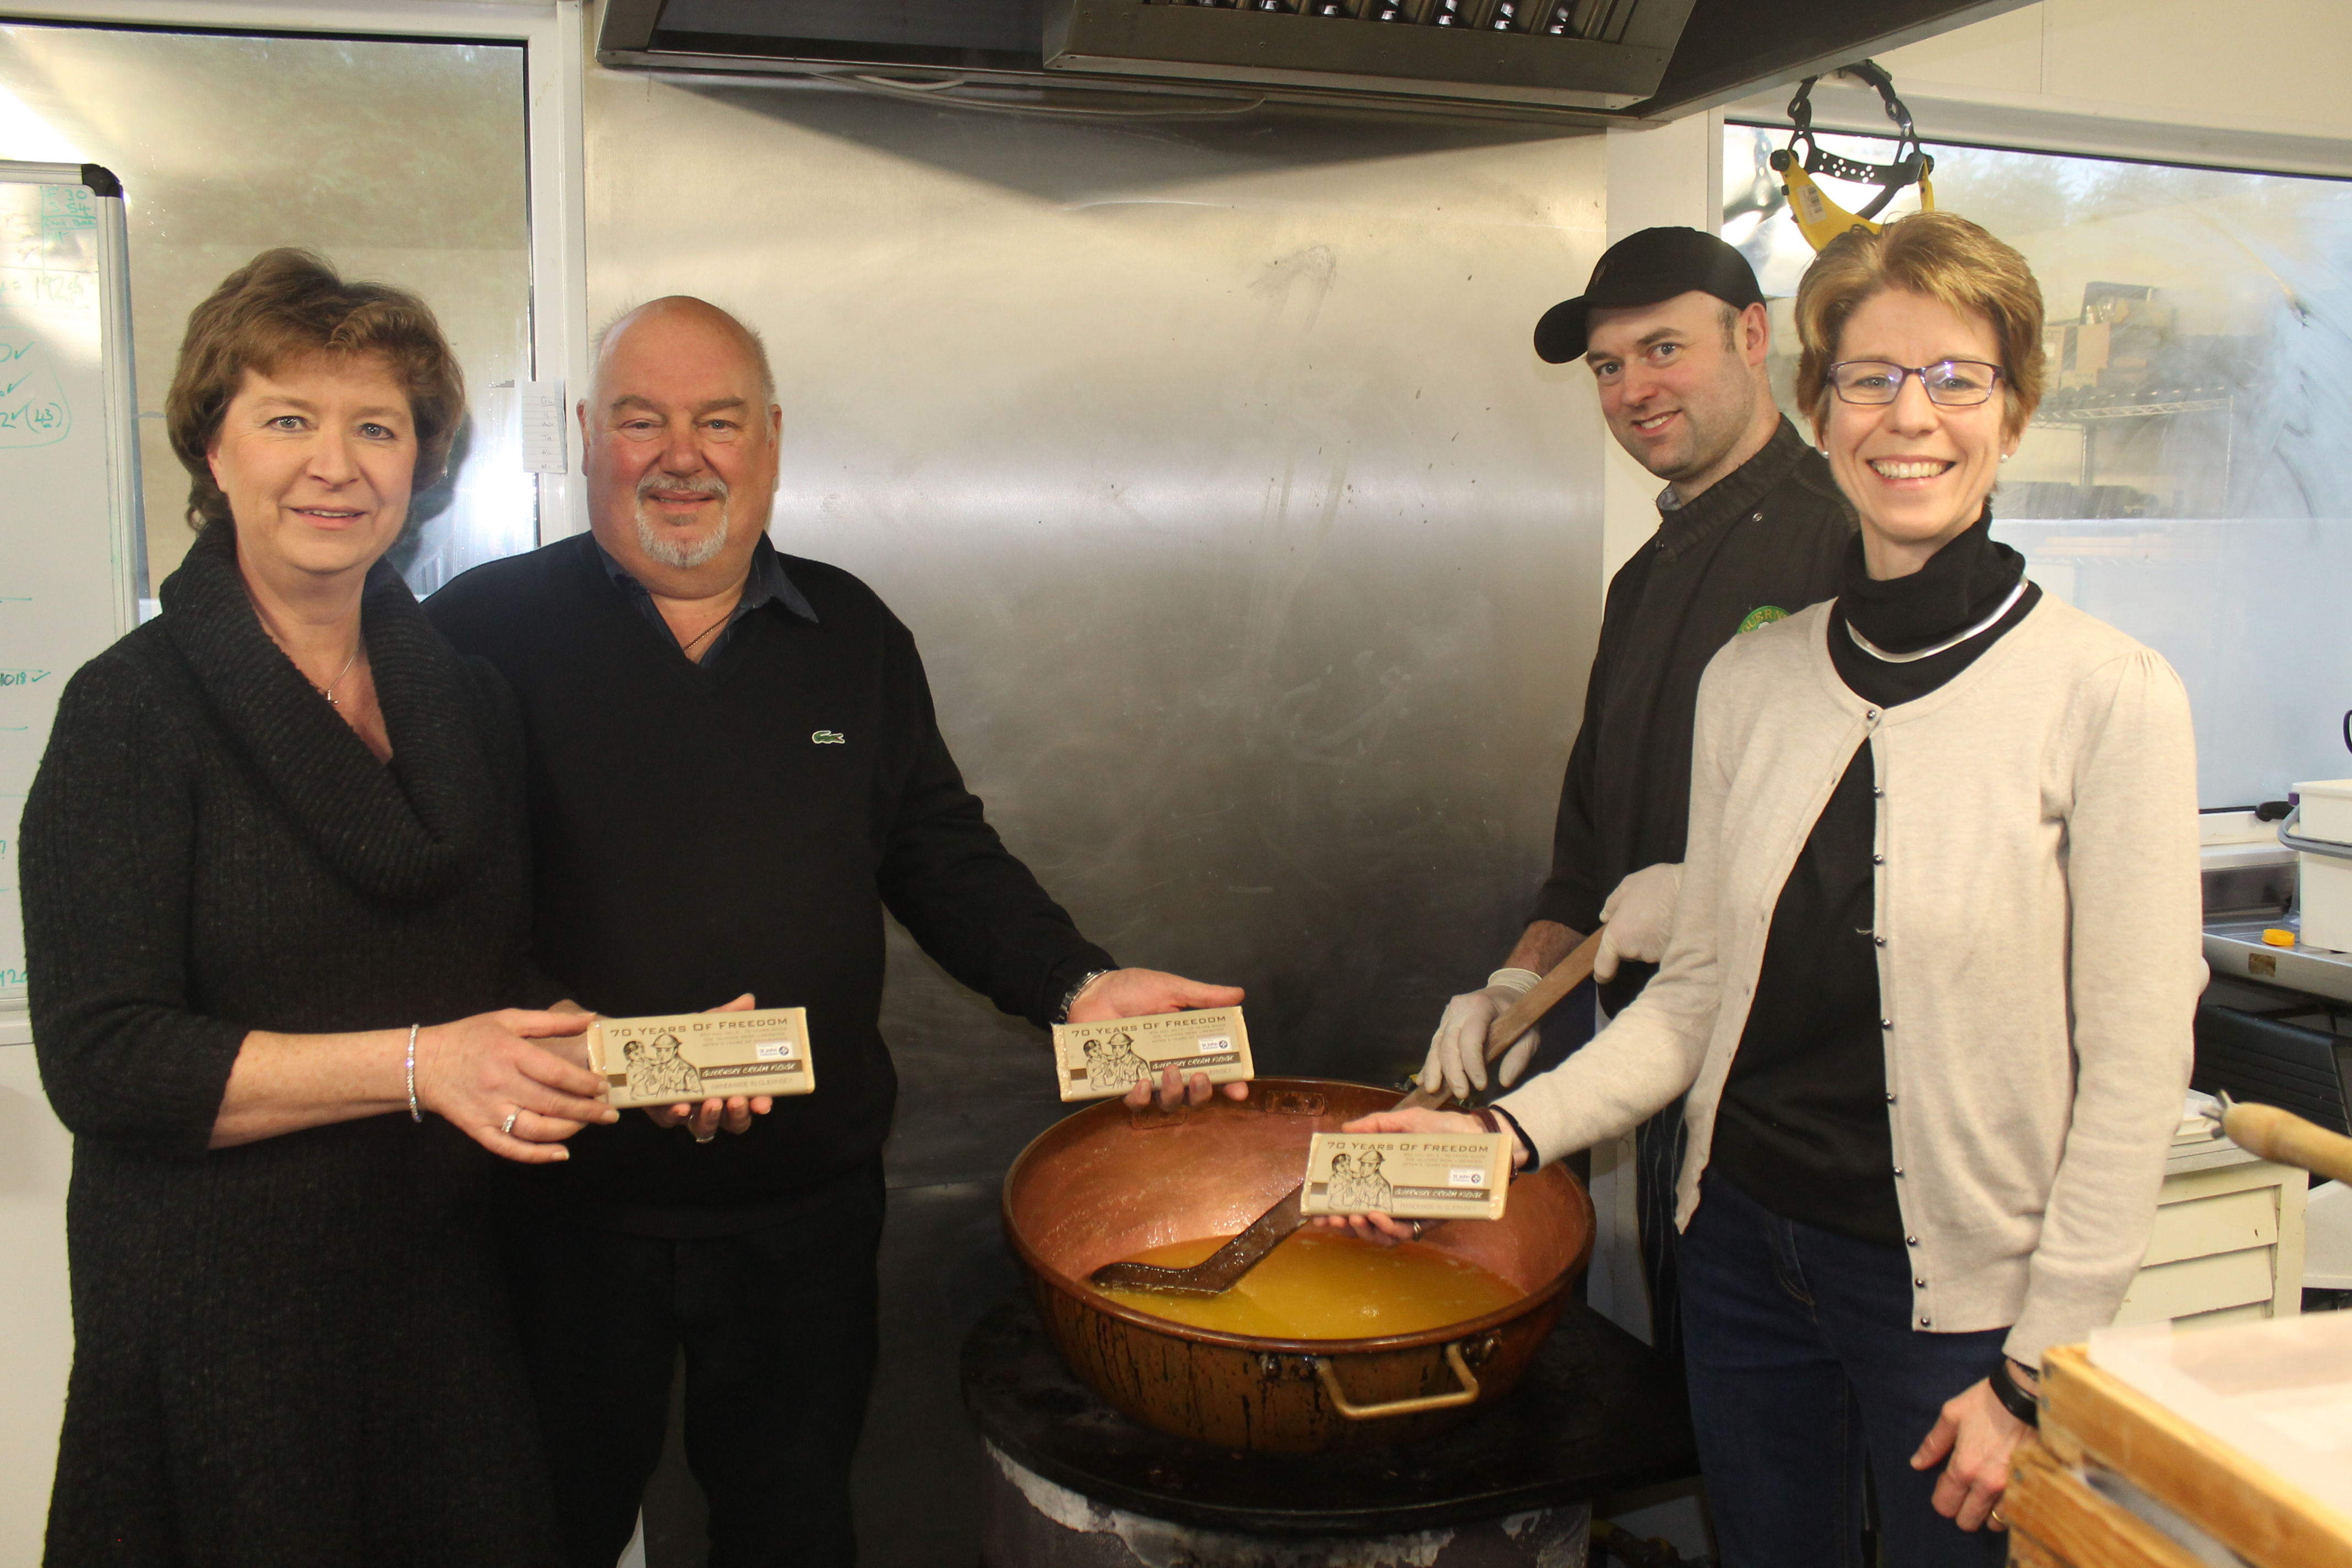 Rosemary and Terry Willey, left, co-owners of Guernsey Gourmet Fudge and chef Craig Wynstone and Vanessa Spiller, right, chief executive officer of the Commandery of St John